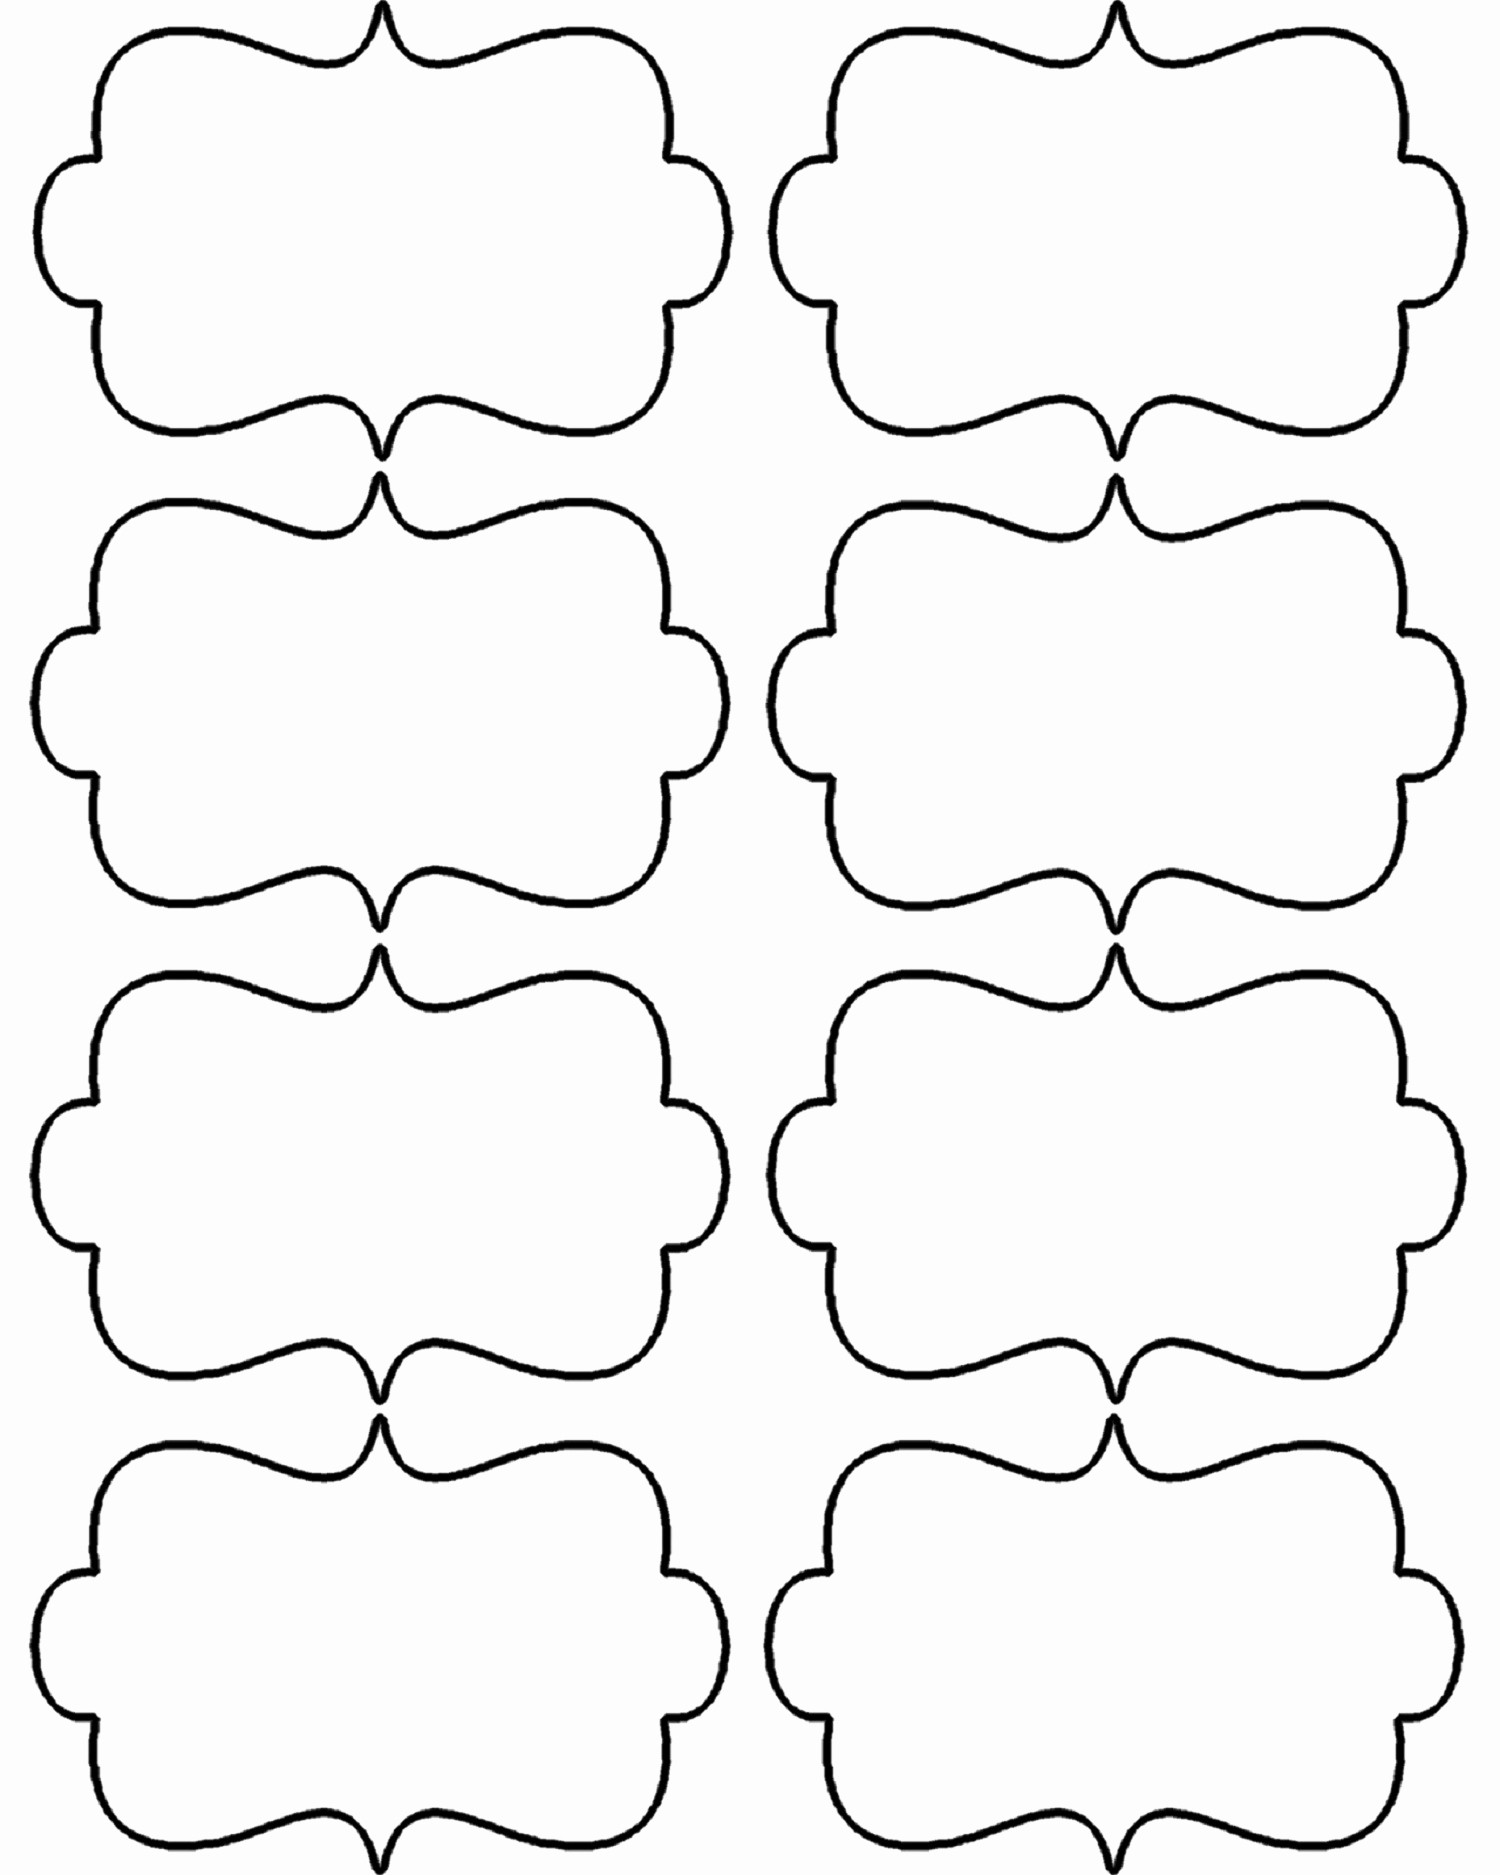 Template for Tags for Gifts Lovely Free Printable Gift Tags for Cute Tags